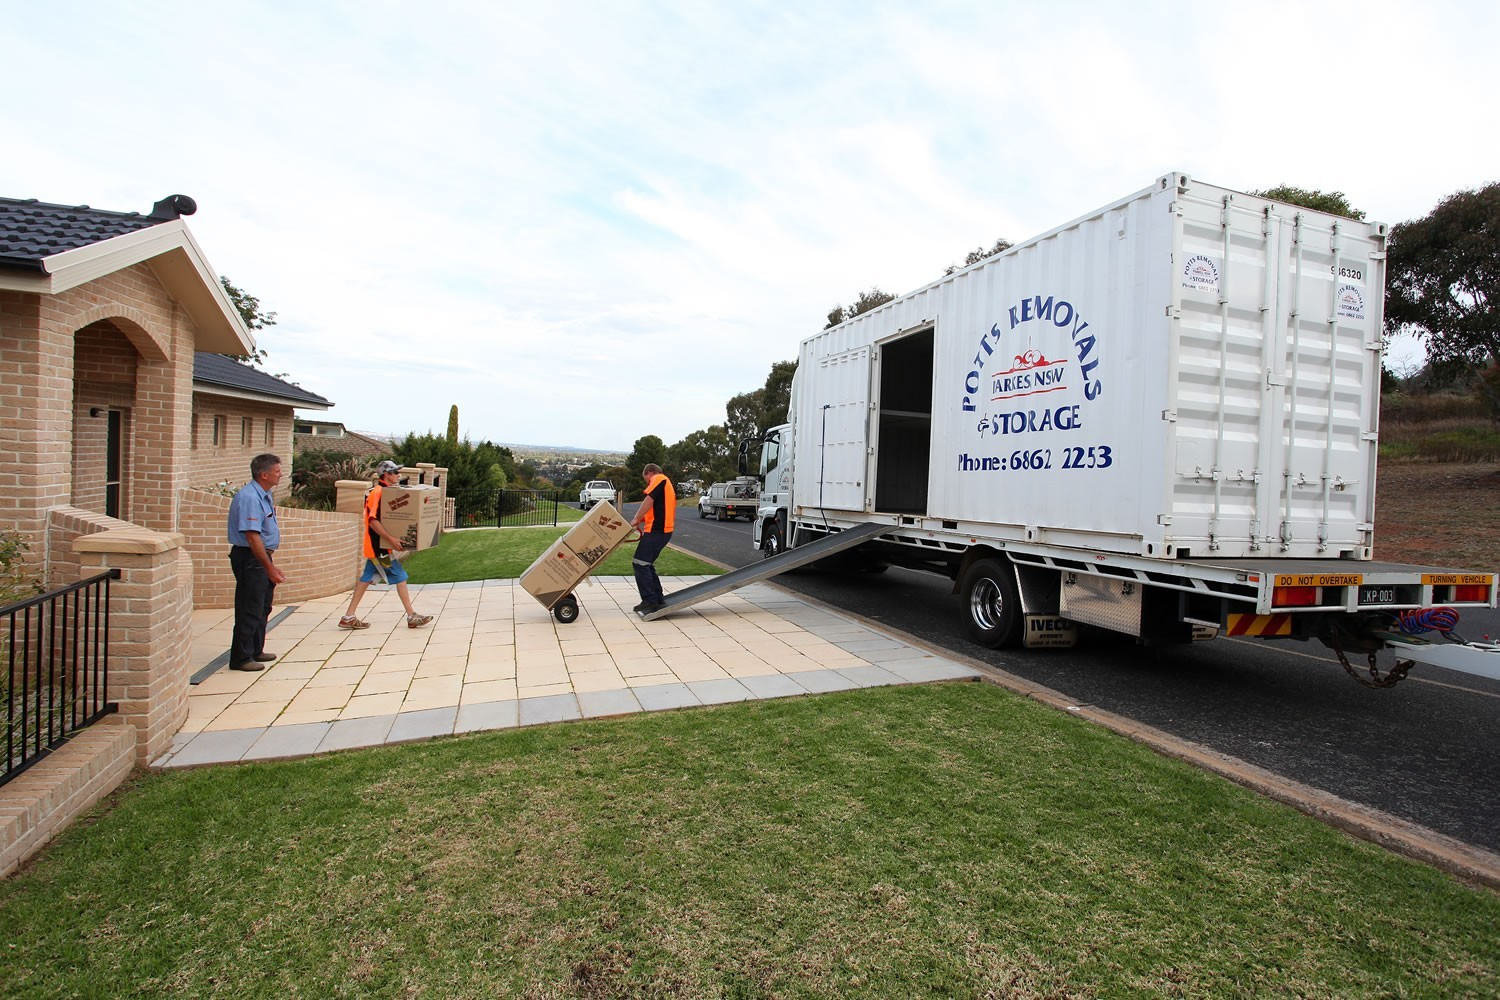 cheap sofas newcastle nsw single chair sofa beds home furniture removals potts group